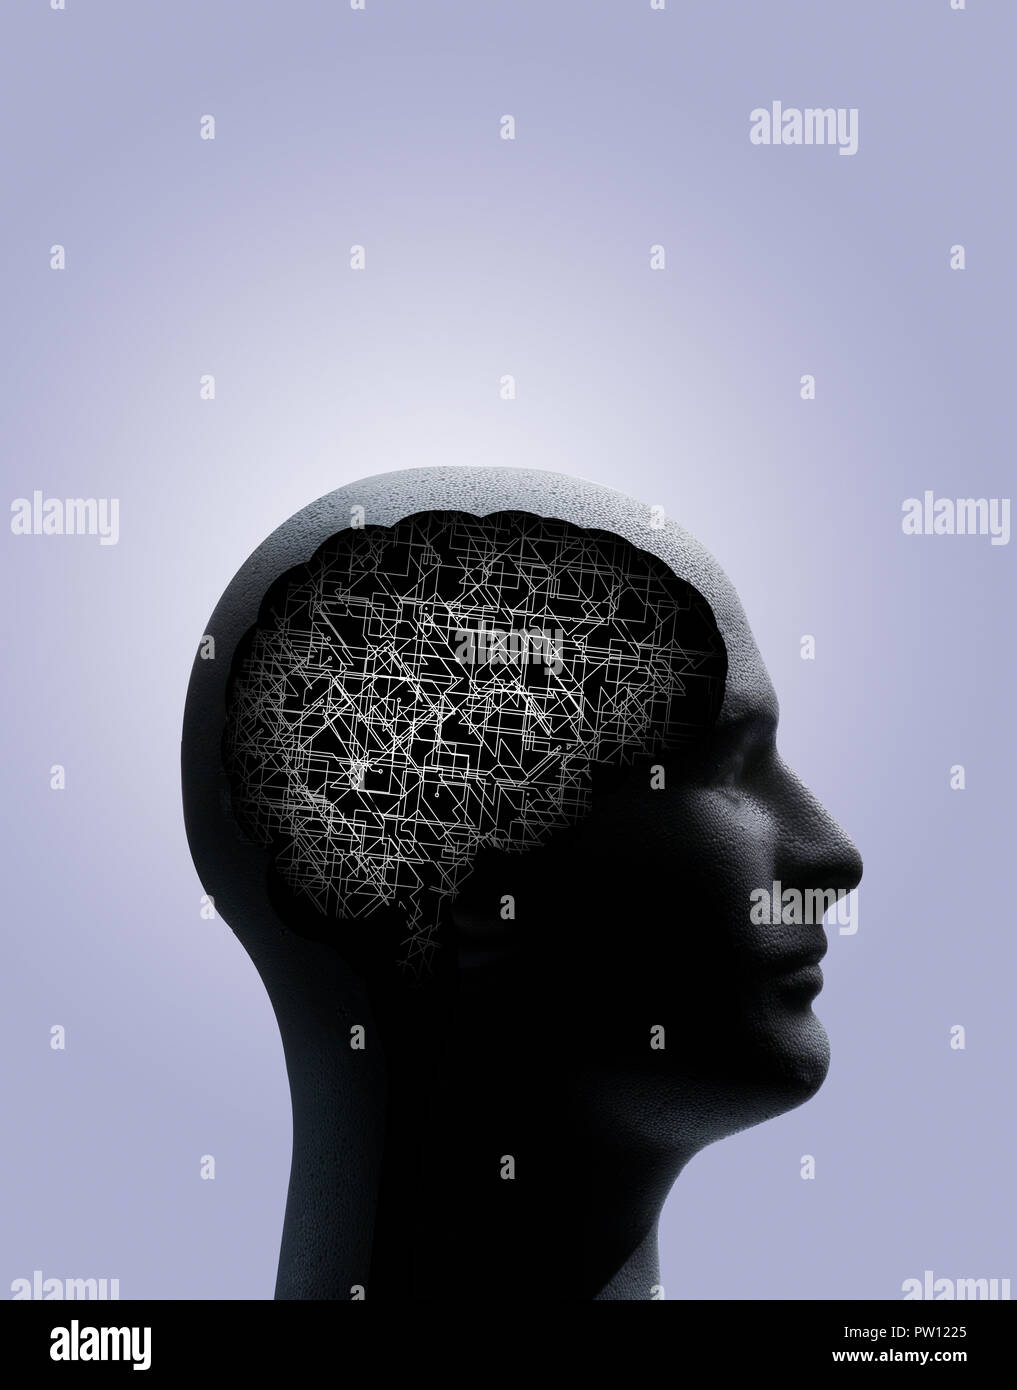 Concept Profile of a Man with Outline of Brain and Stem, showing a complex structure, texture, Forward Thinking, Ideas - Stock Image